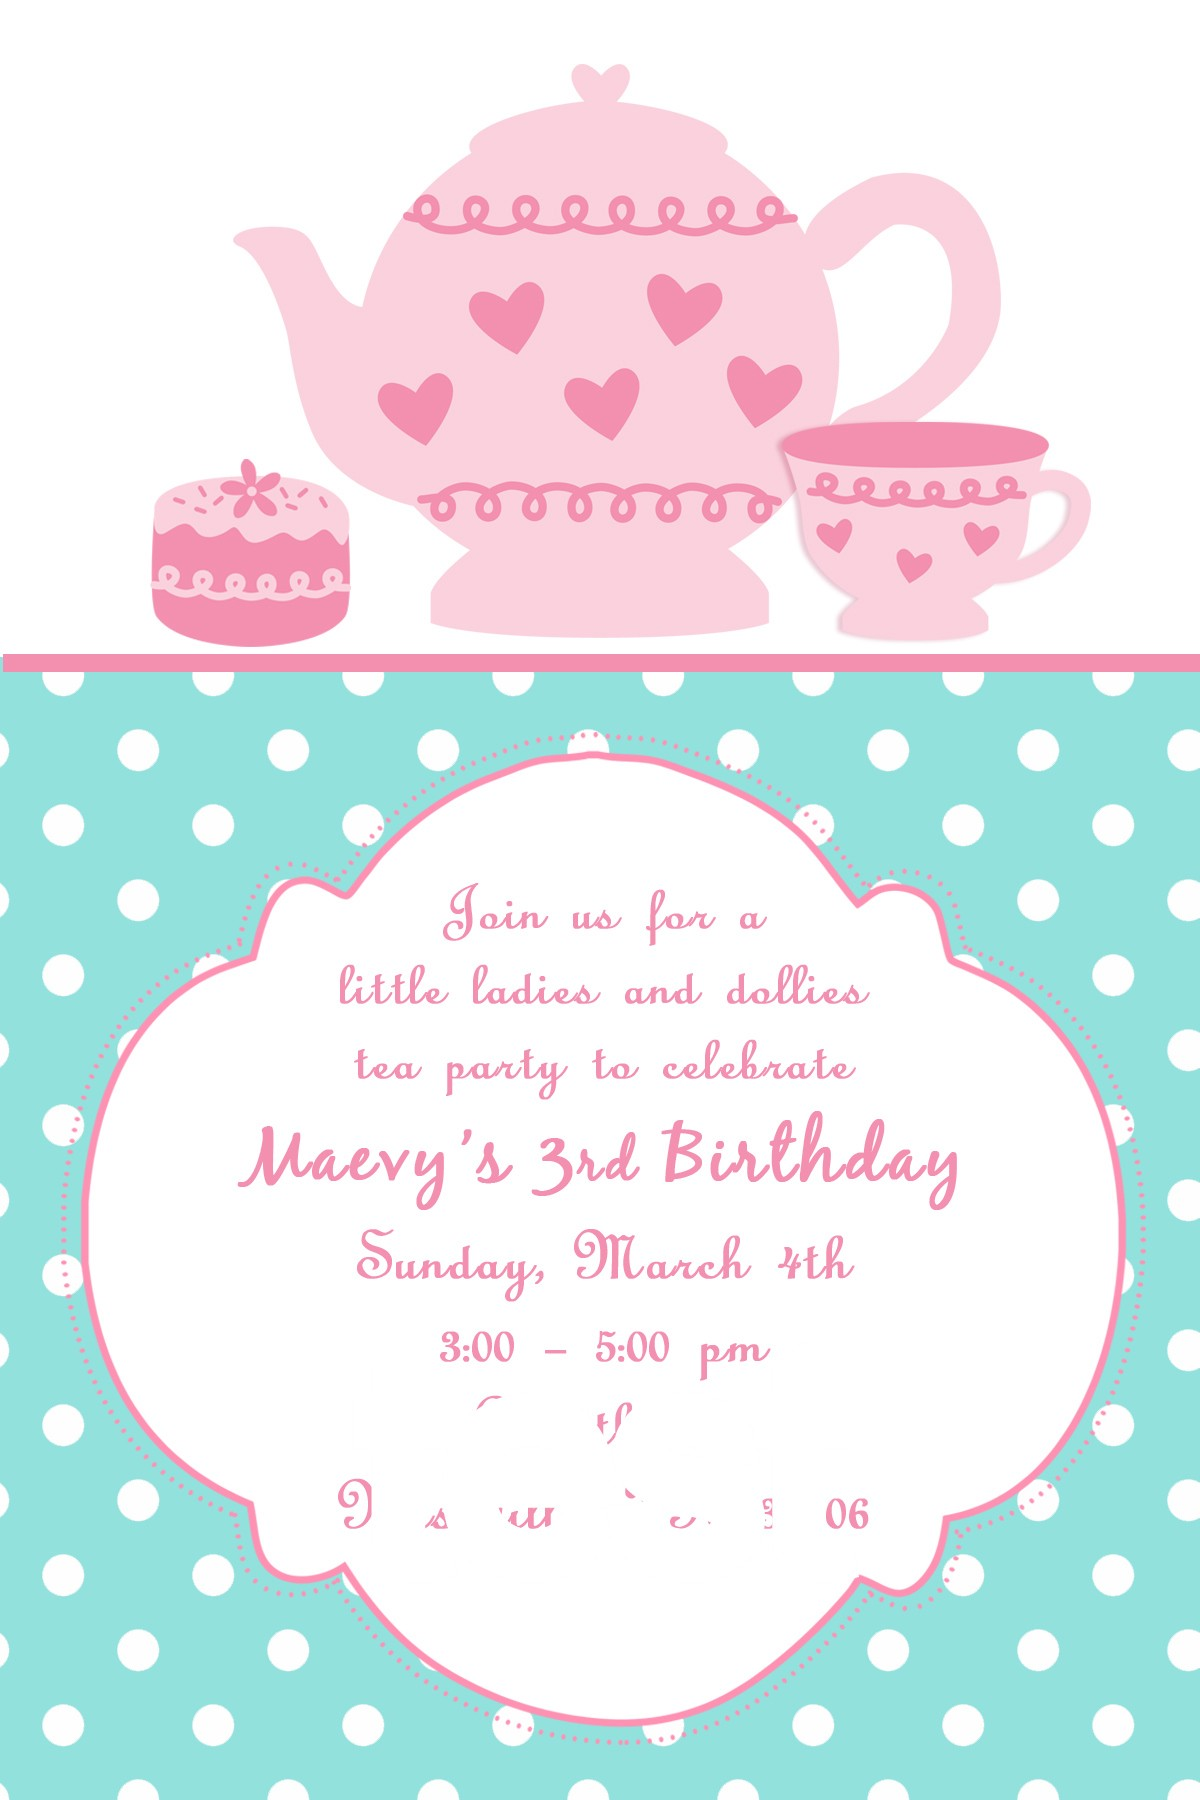 tea party birthday invitation template ; invitation-templates-for-tea-party-valid-tea-party-birthday-invitations-of-invitation-templates-for-tea-party